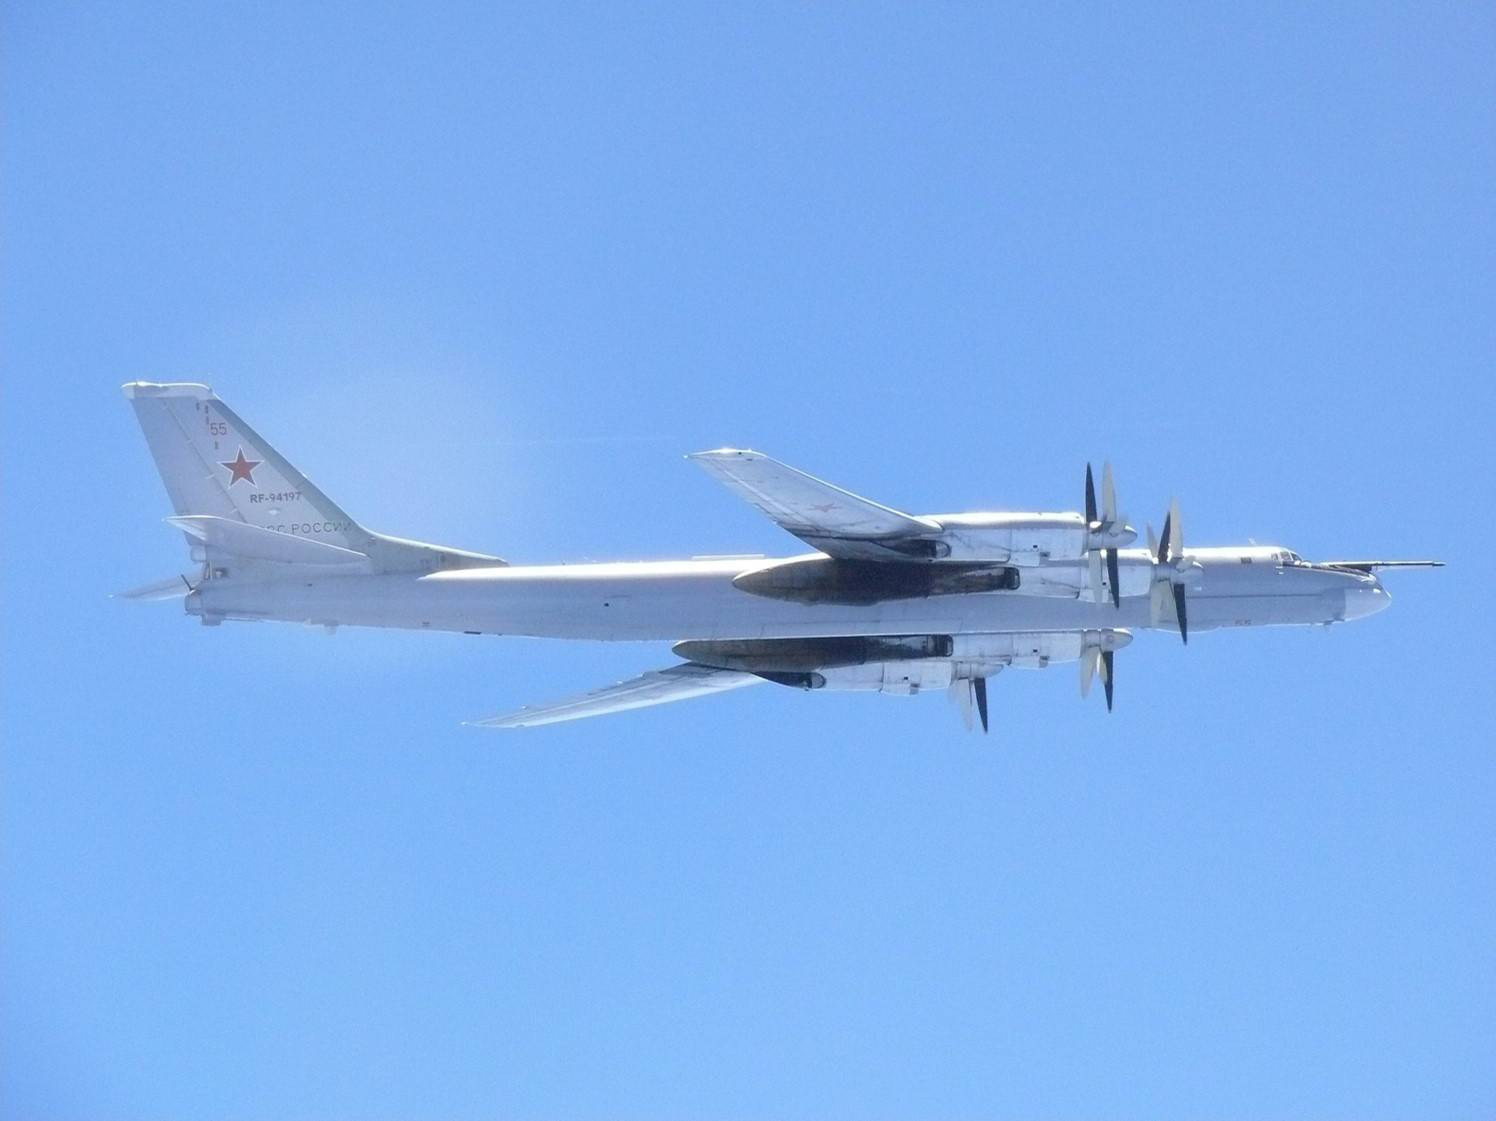 A Russian TU-95 bomber is seen flying near the southern part of Japan in this handout picture taken by the Air Self-Defense Force in  August 2017. | JOINT STAFF OFFICE OF THE DEFENSE MINISTRY OF JAPAN / VIA REUTERS